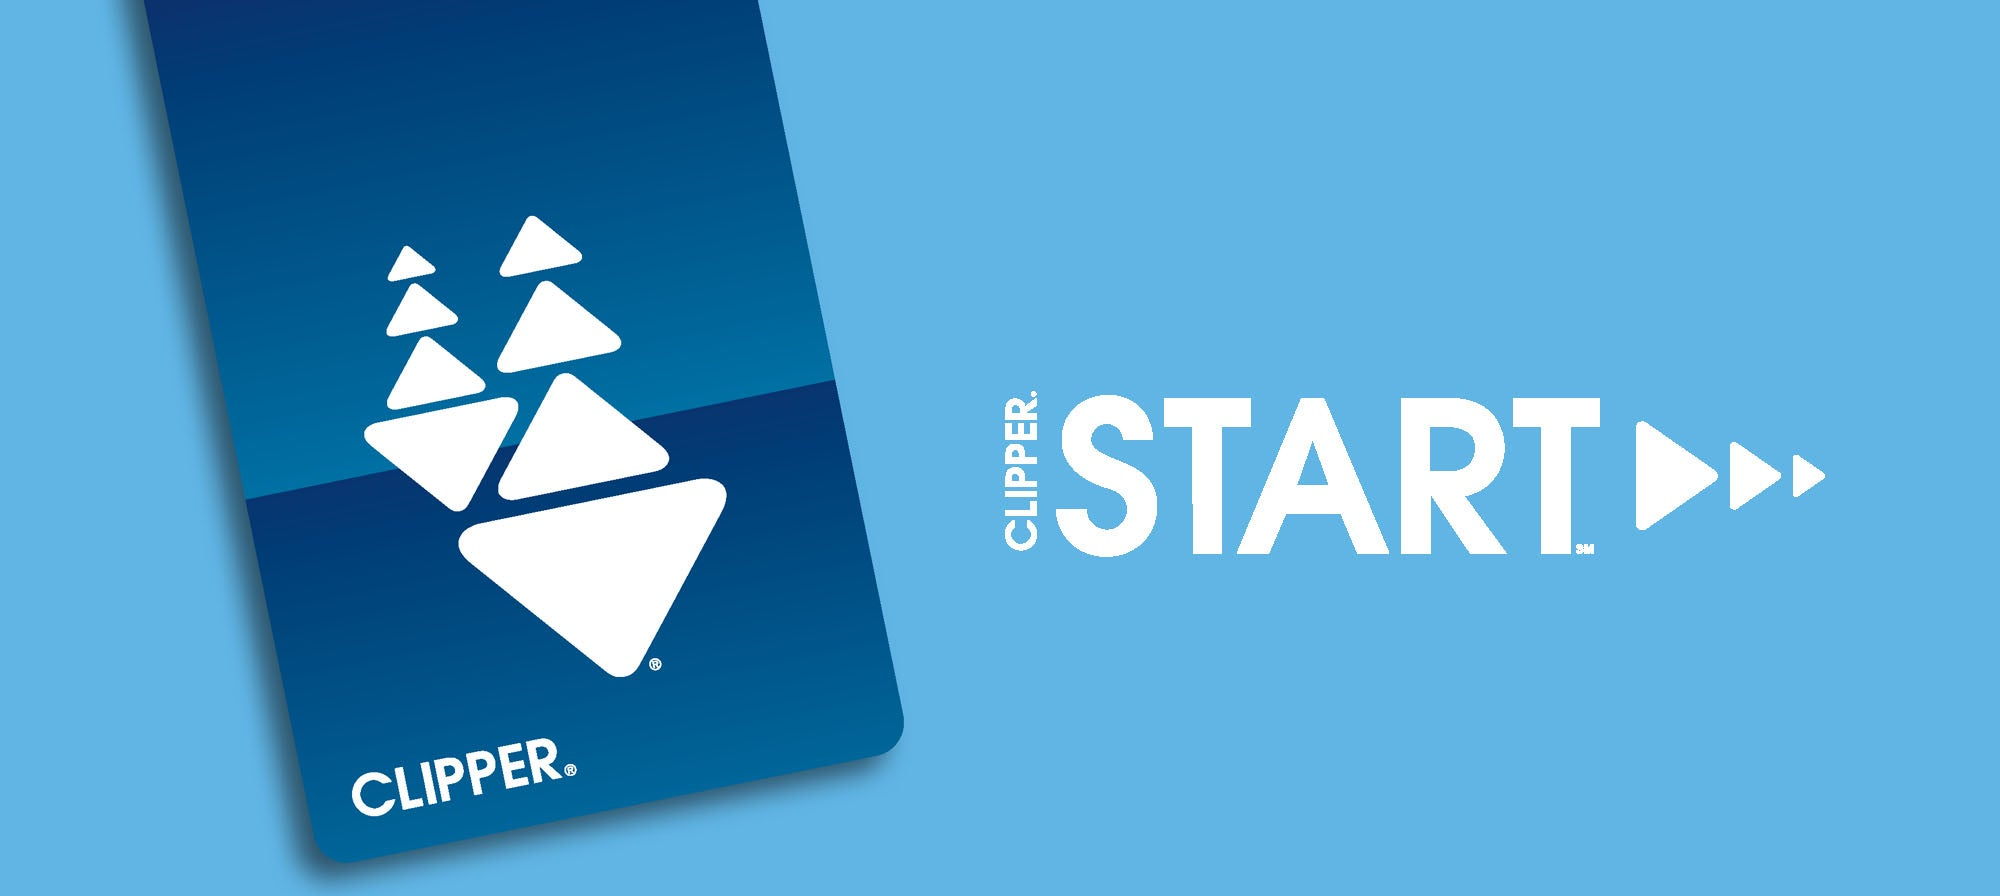 Clipper START program logo and Clipper card image